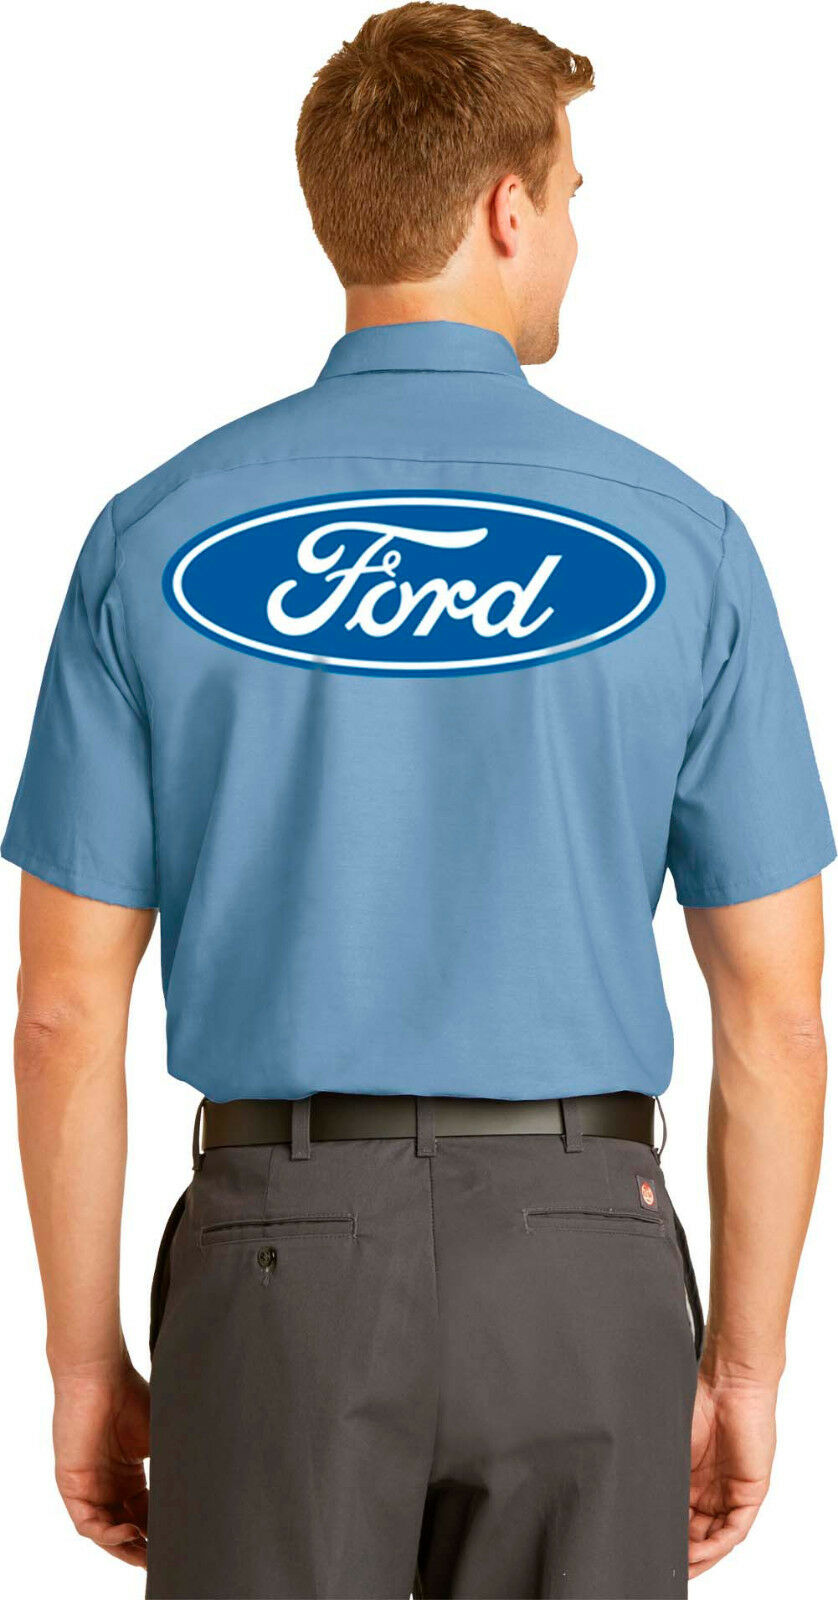 96393df95d Mens Ford Mechanic Shirt vintage Auto Repair Size Small to 4X Free Shipping